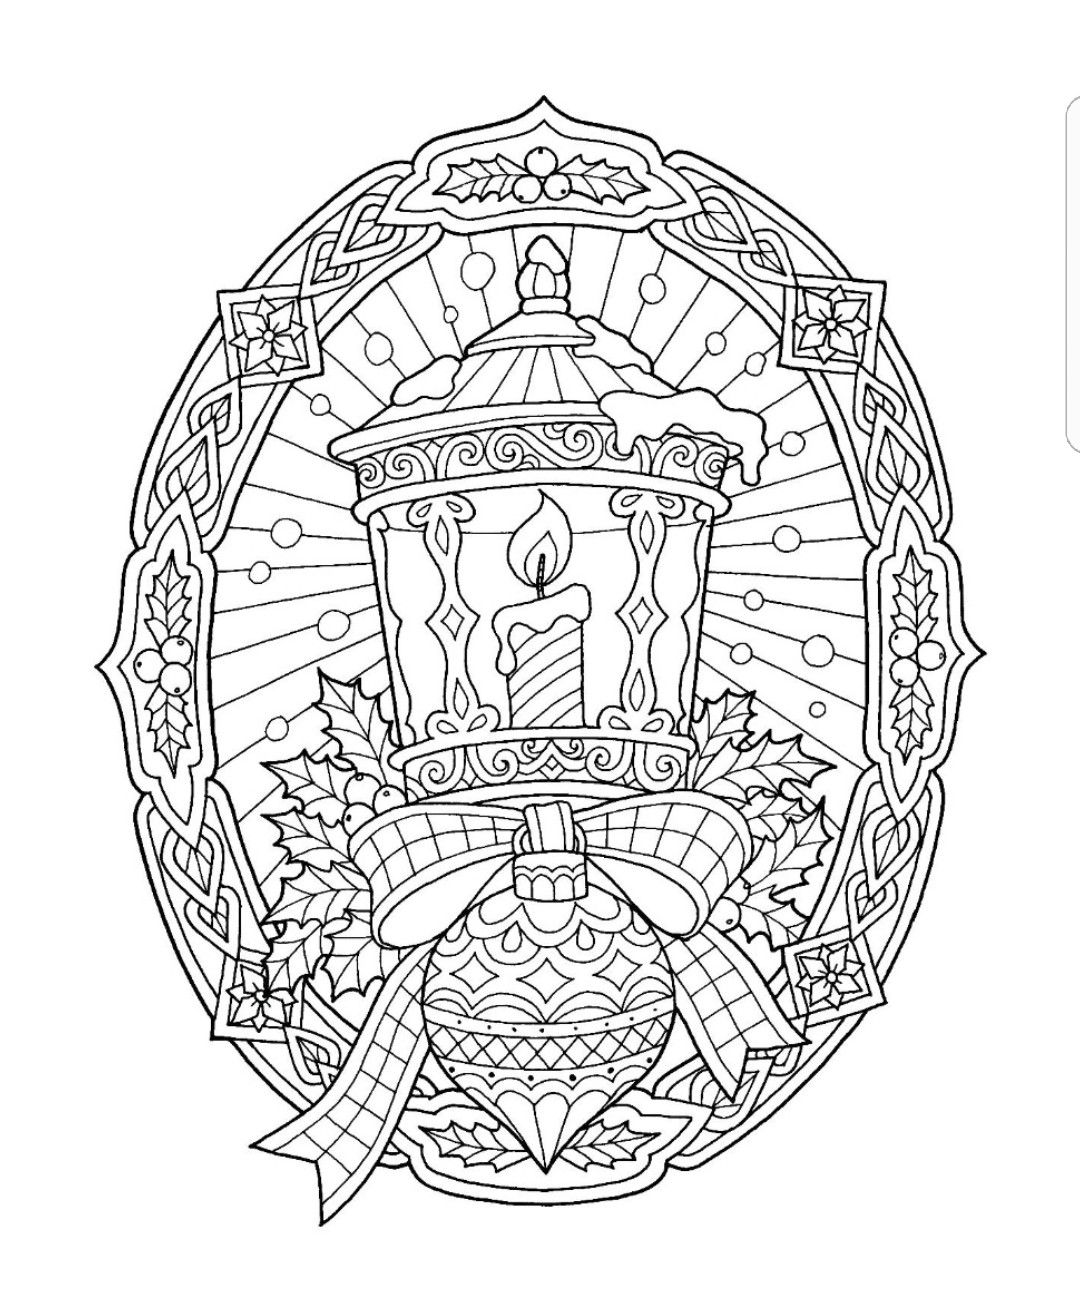 Pin By Amberly Emery On Malebog Jul Free Christmas Coloring Pages Mandala Coloring Pages Christmas Coloring Books